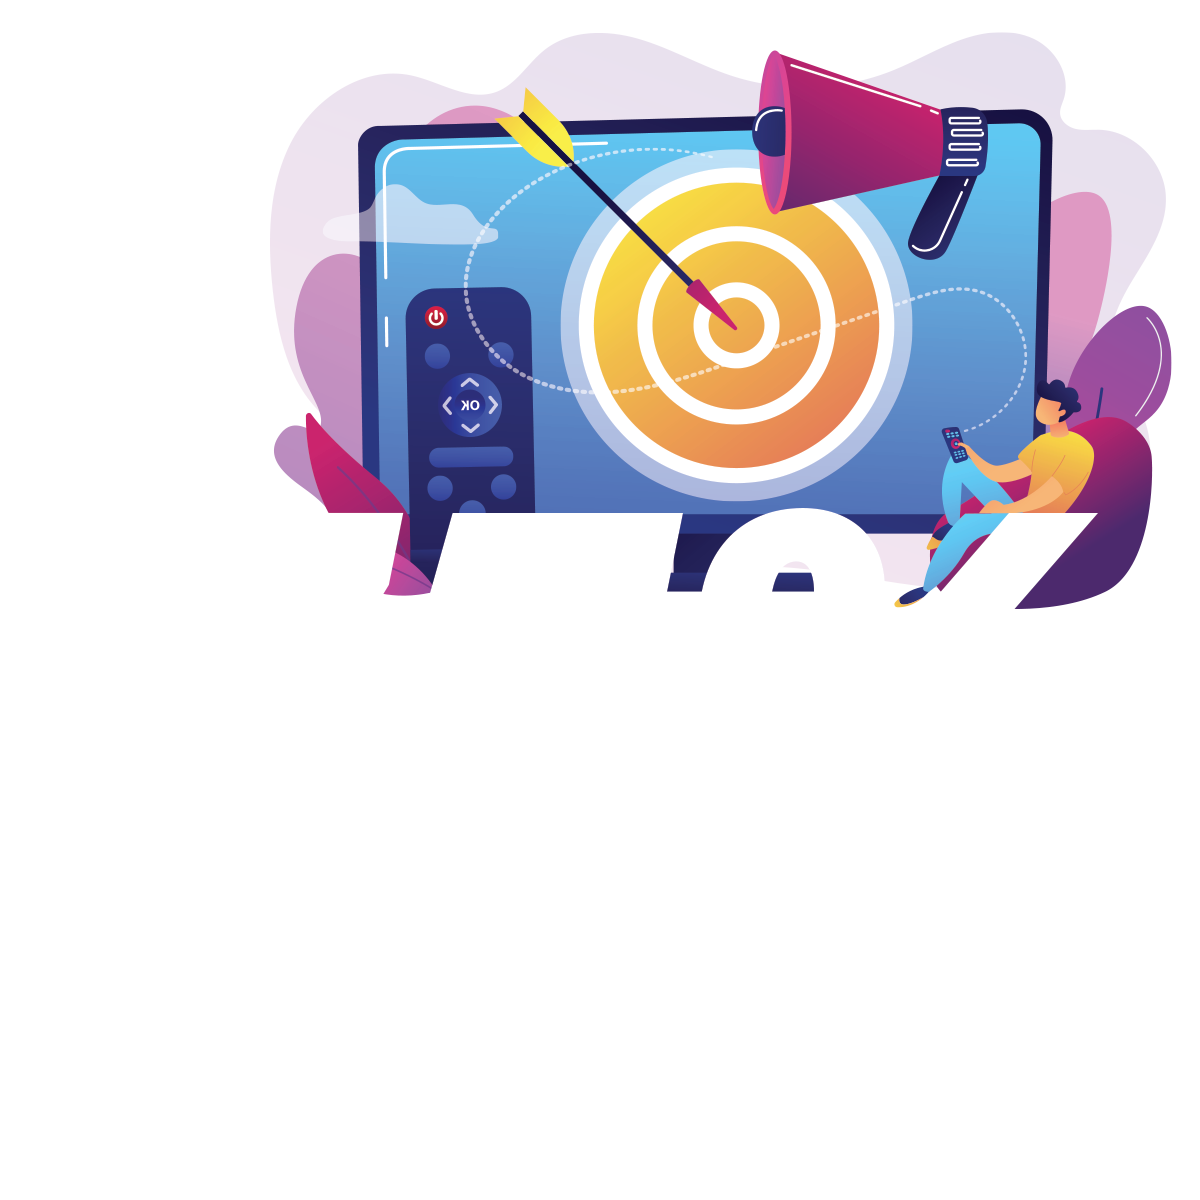 75% of homes have a smart tv connected to the internet.